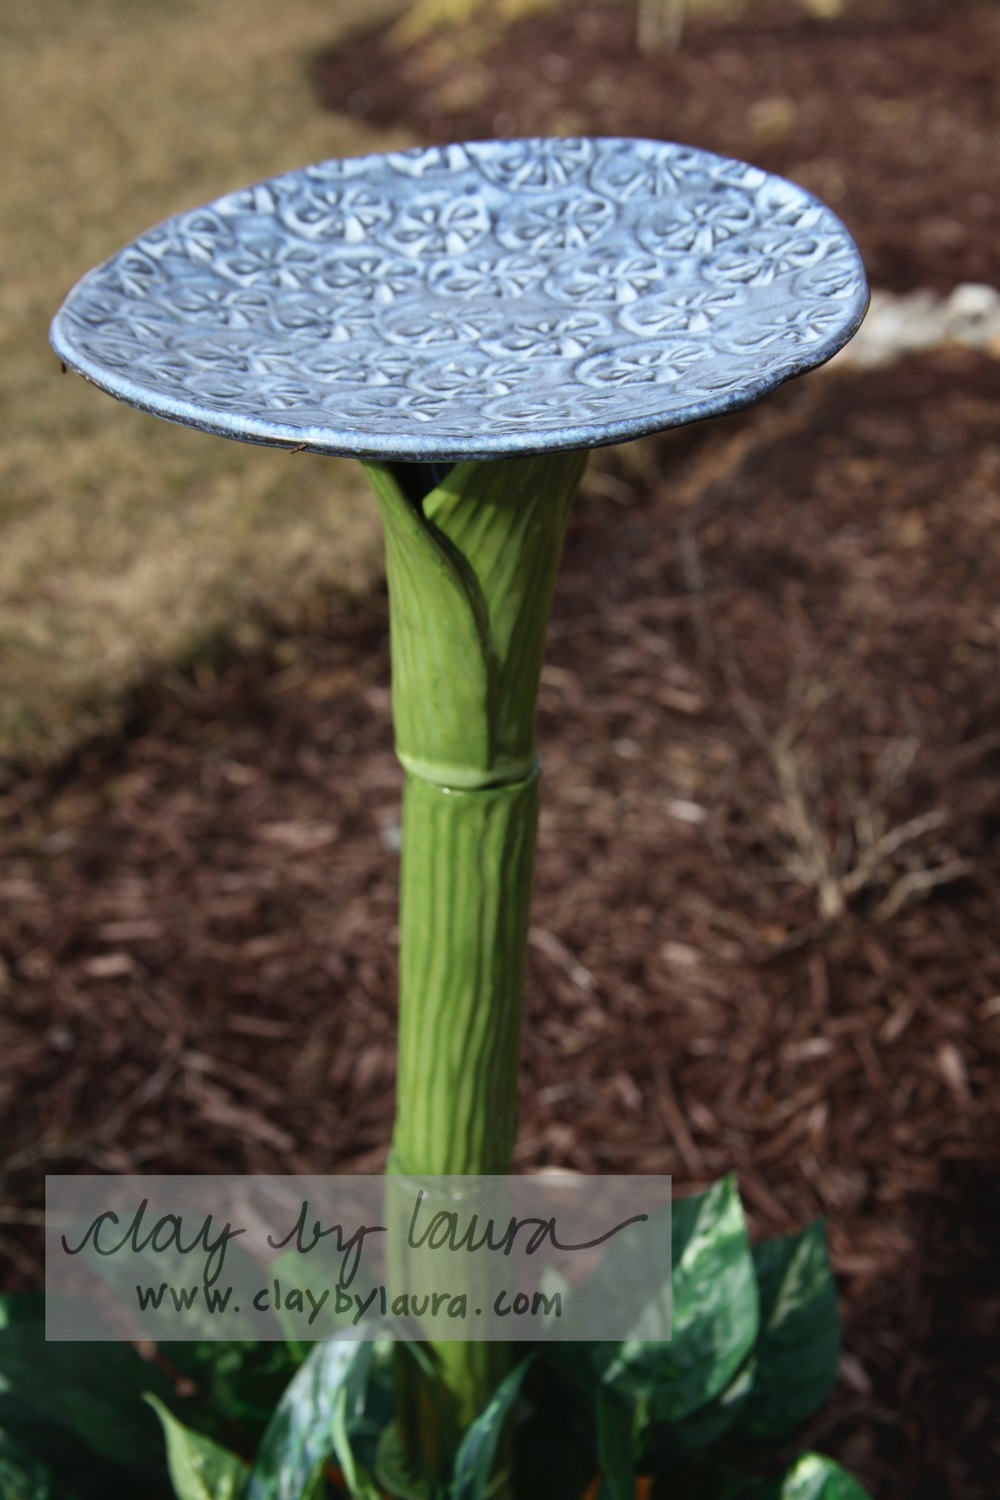 The butterflies and birds will appreciate a drink and quick dip in this birdbath totem.